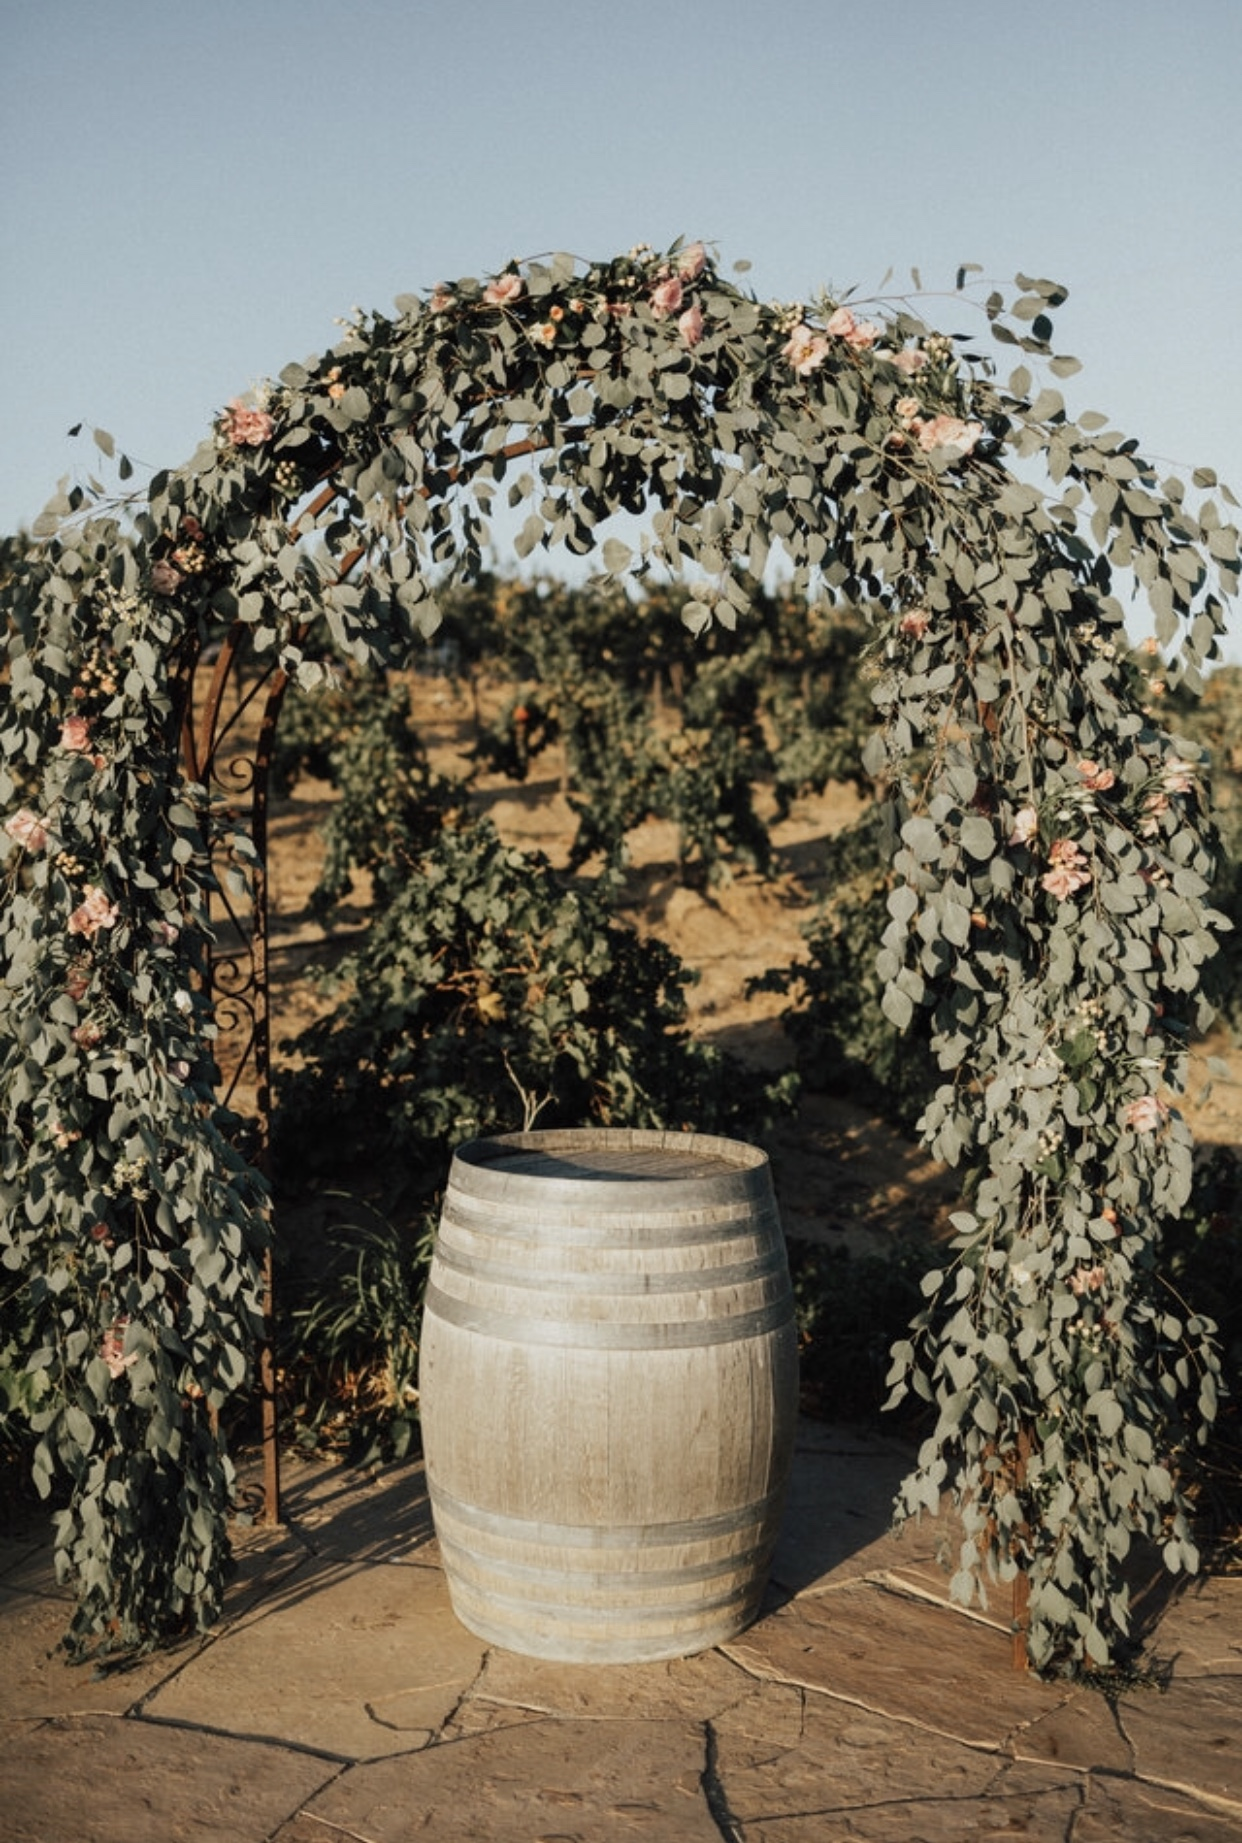 I did not want an arch made of ONLY flowers as that has always looked too over-the-top to me. So, Stephanie filled the arch with Eucalyptus and accented it with flowers here and there. This was perfect and I cried when I first saw how beautiful it looked.